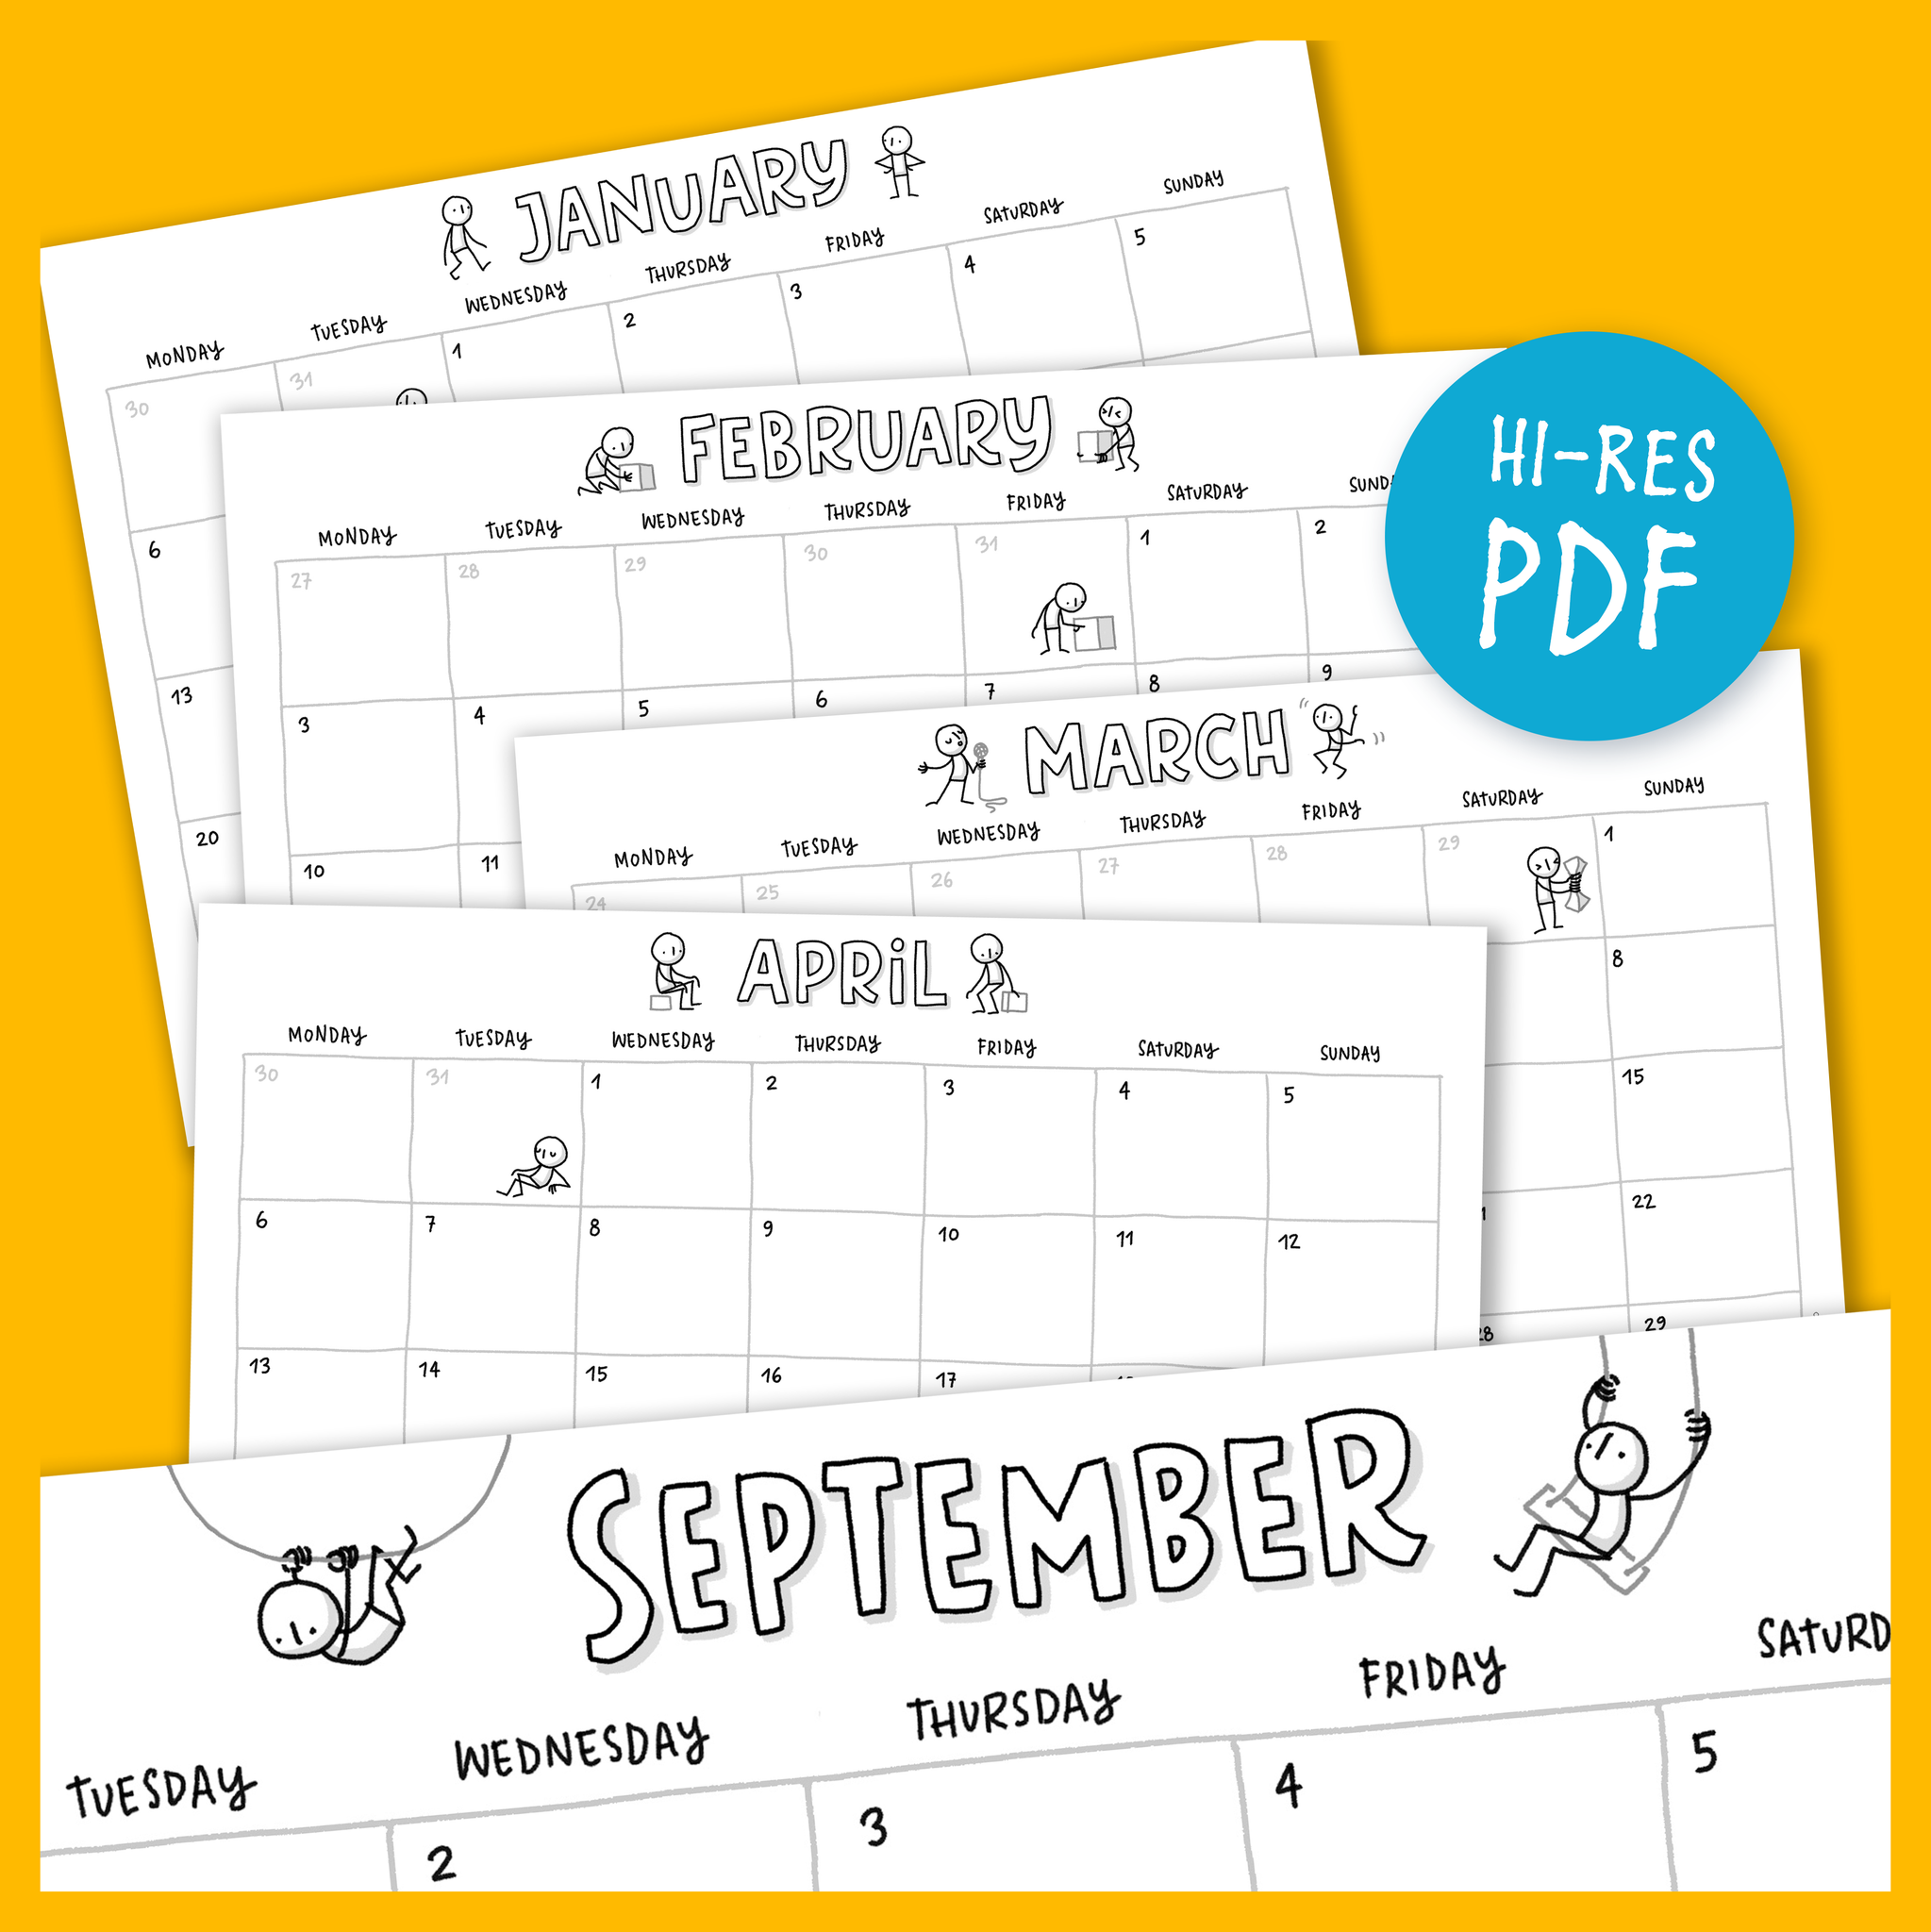 Printable Calendar 2021 – Little People - Eva-Lotta's Shop